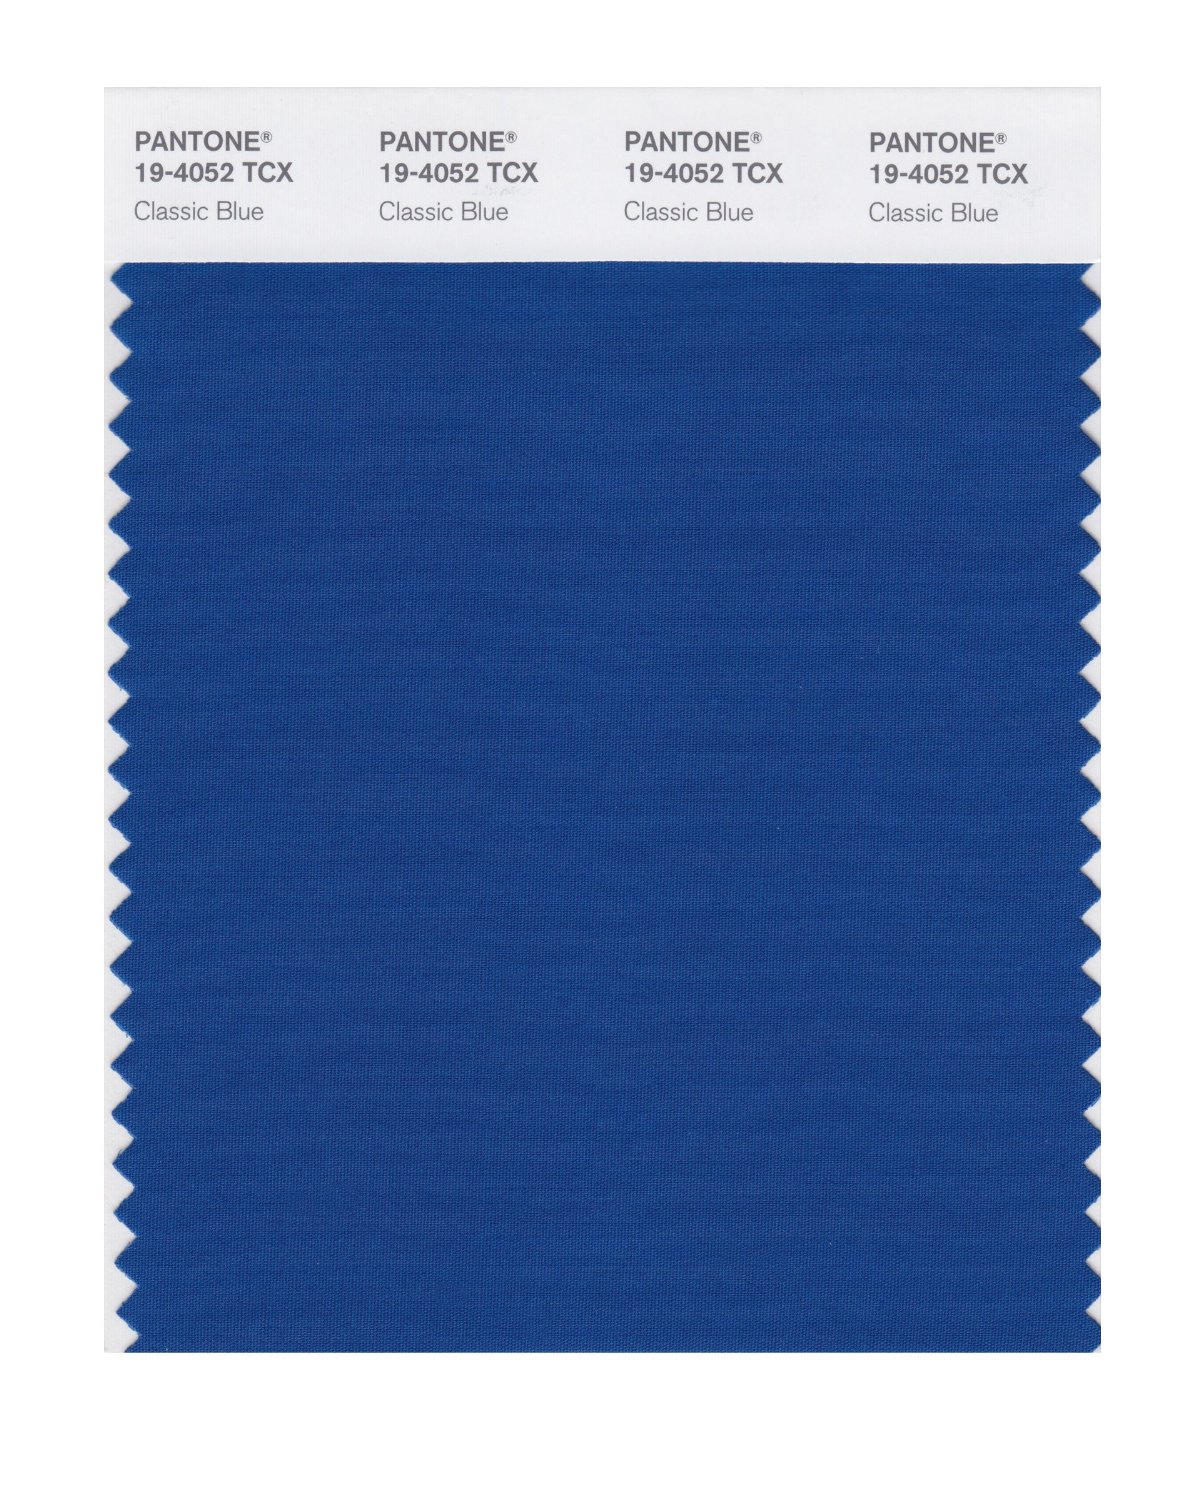 Pantone Smart Swatch 19-4052 Classic Blue